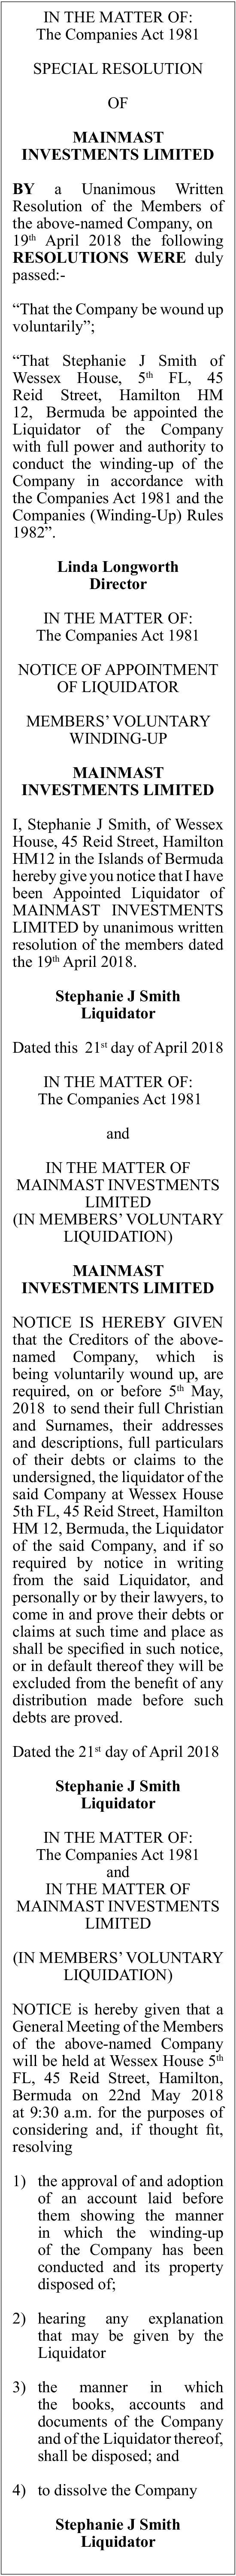 Maximast Investments Limited